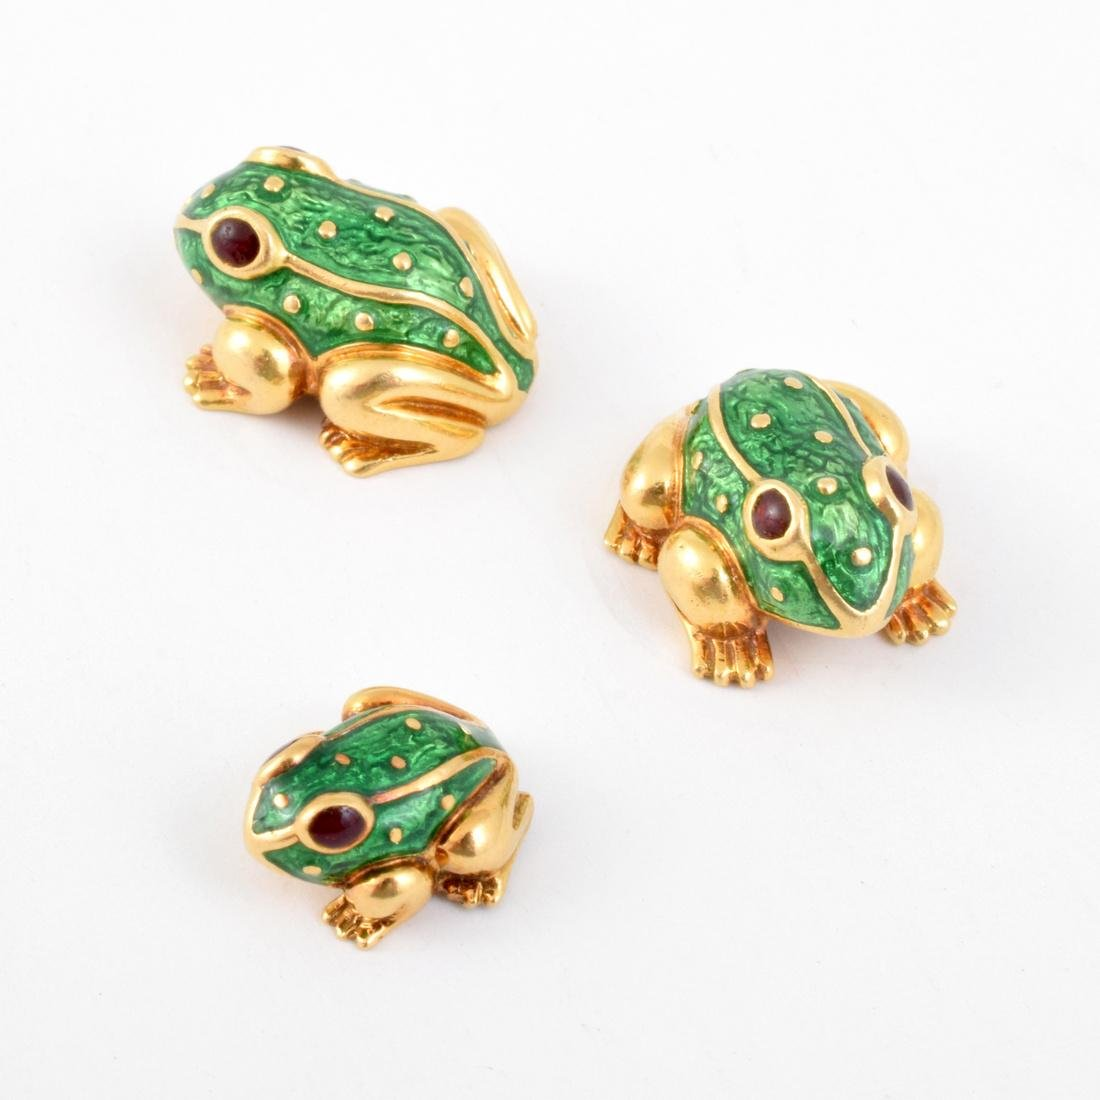 David Webb 18K Yellow Gold Frog Tie Pin & Cuff Links